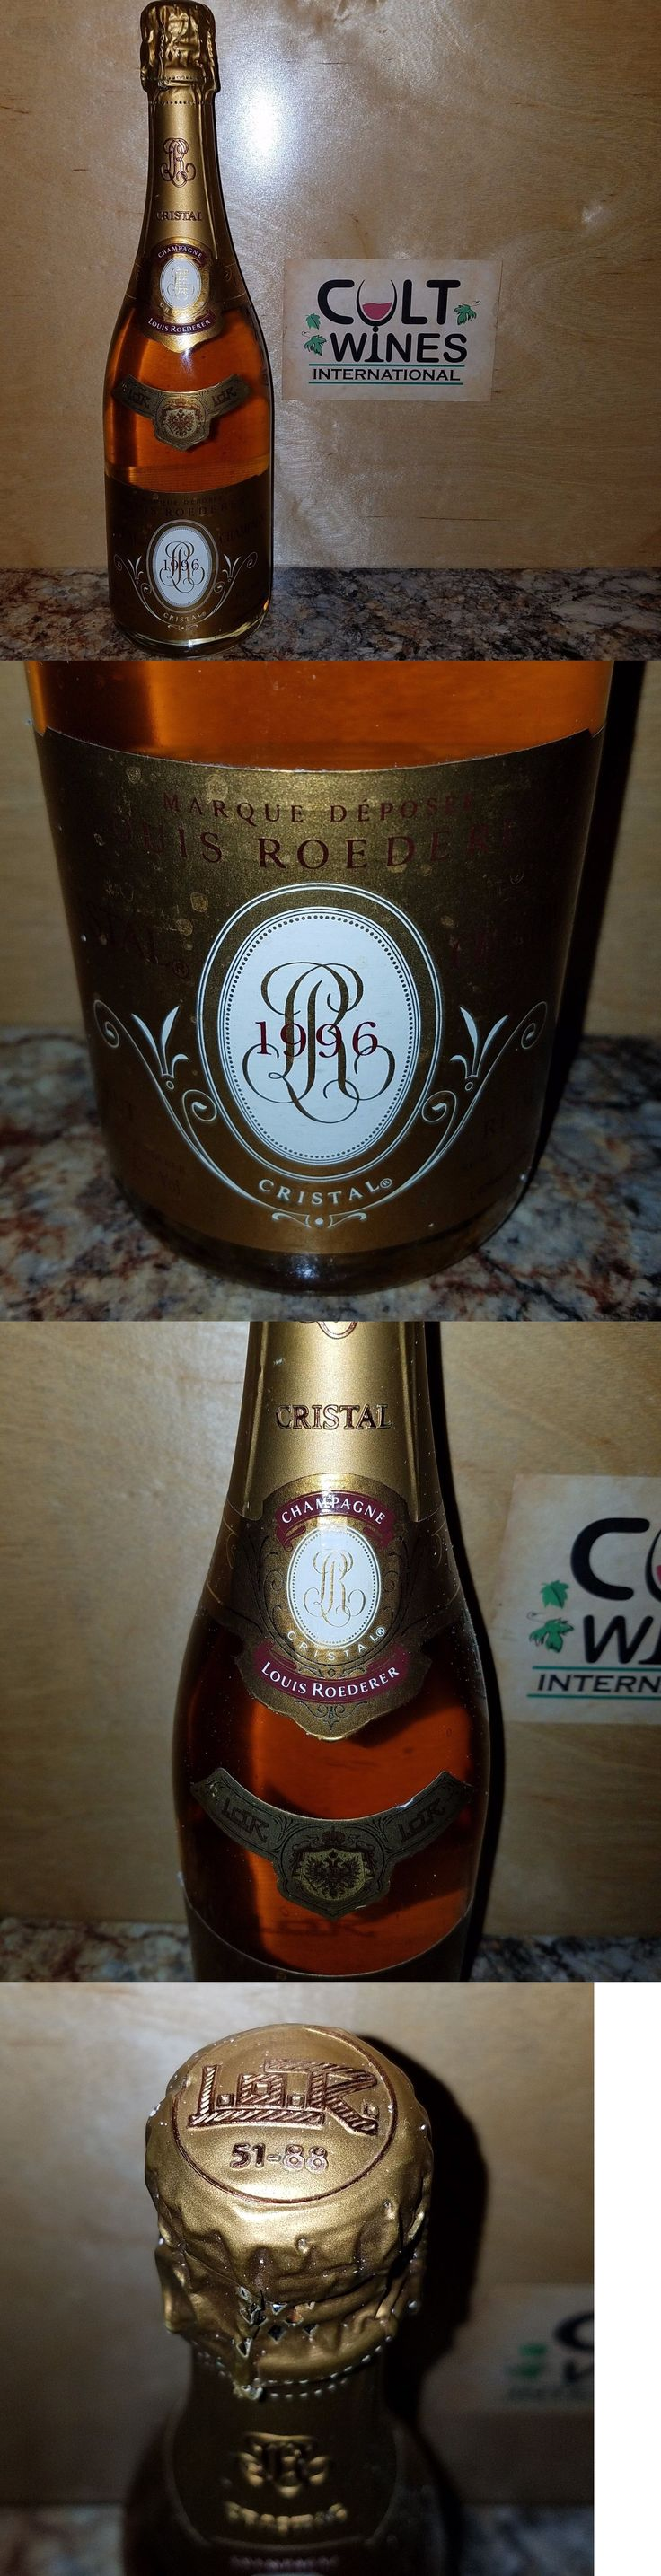 Champagne and Sparkling Wines 26272: V 97 Pts! Rp 96! 1996 Louis Roederer Cristal Champagne -> BUY IT NOW ONLY: $479.99 on eBay!